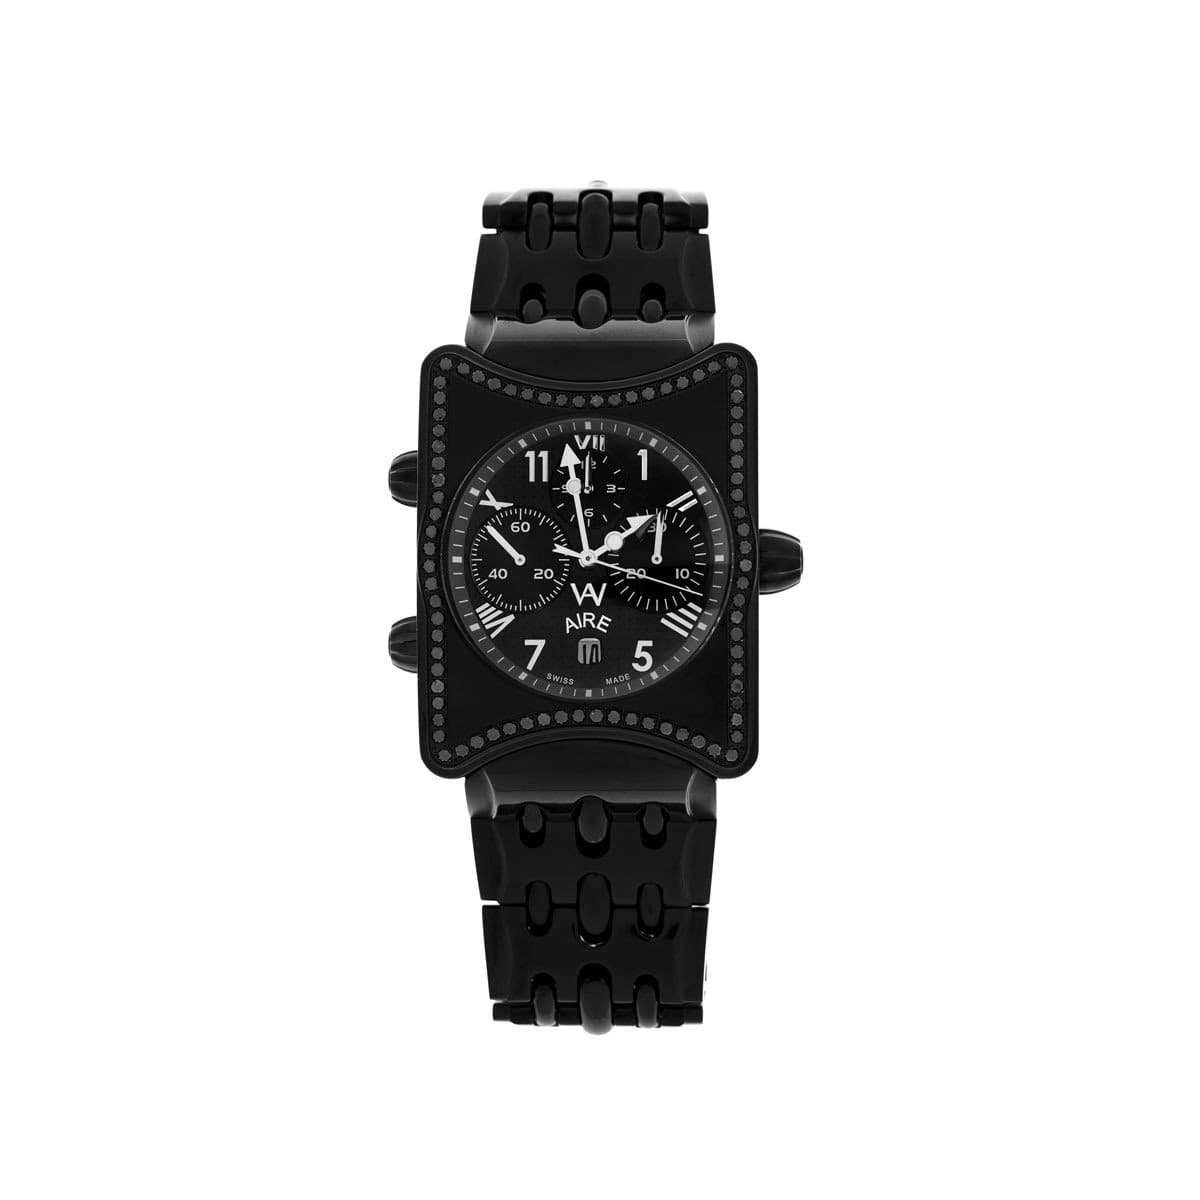 INNER CIRCLE BLACK WATCH - Chris Aire Fine Jewelry & Timepieces